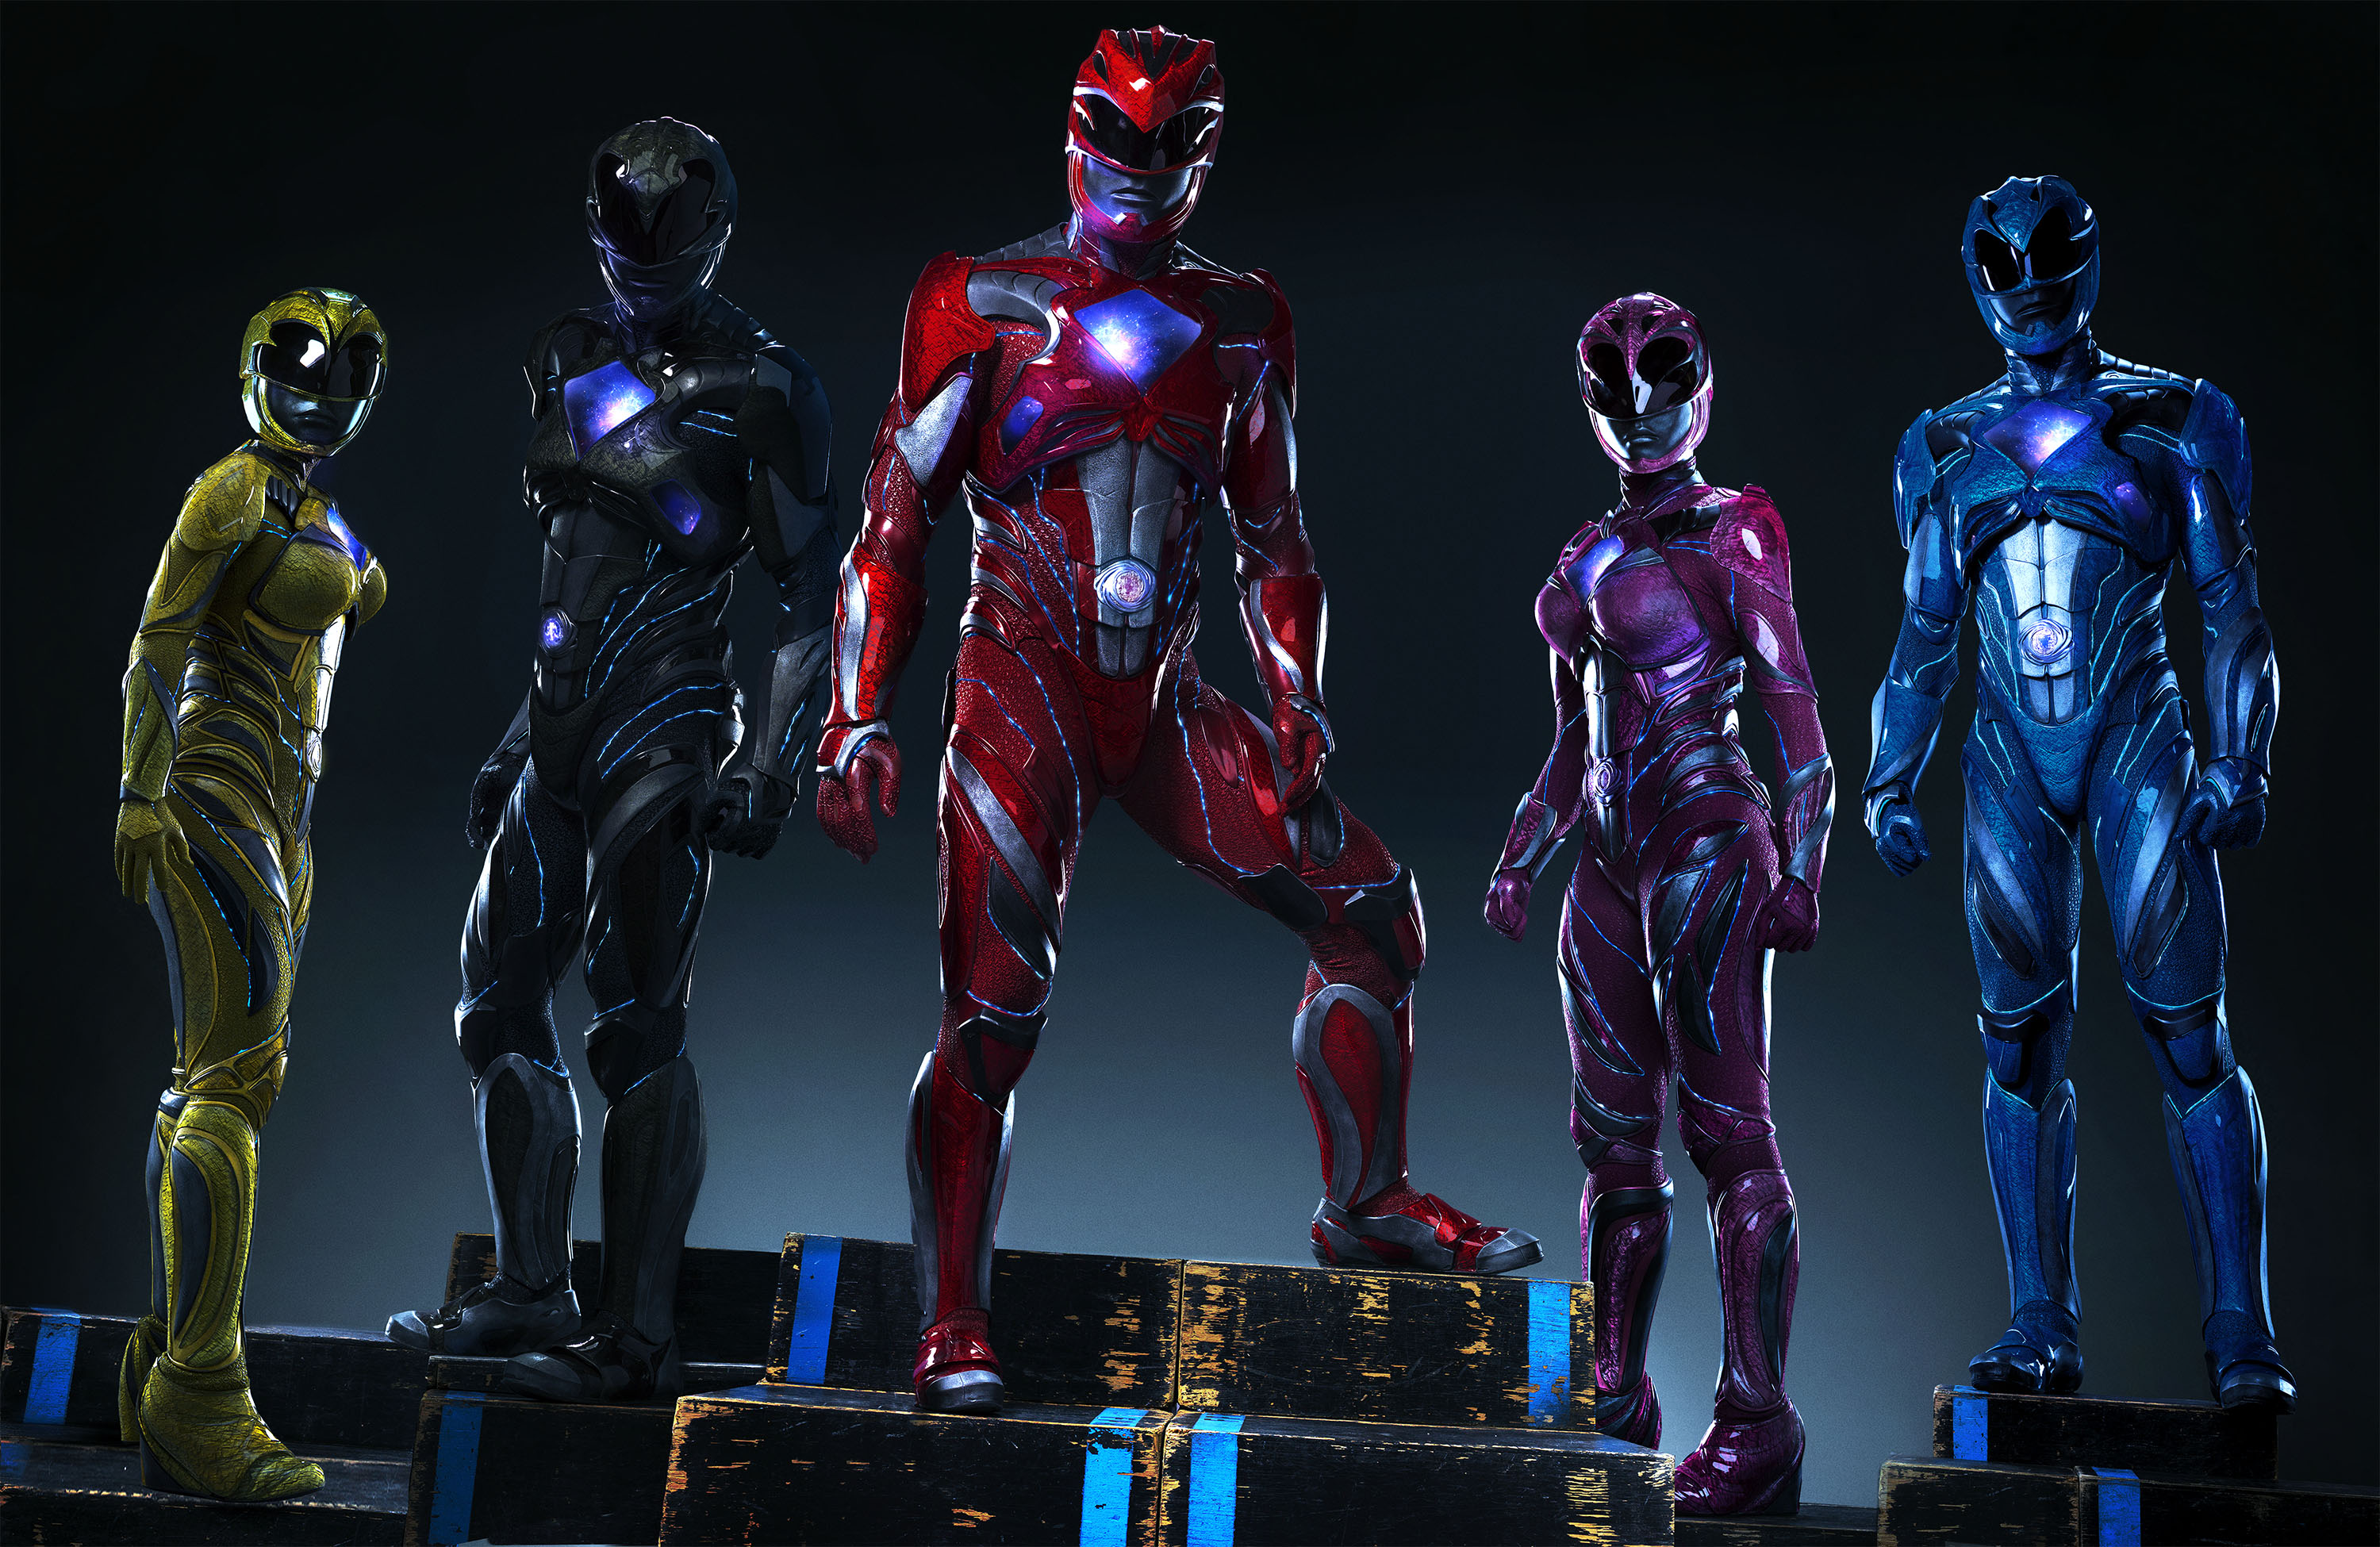 50 Power Rangers 2017 HD Wallpapers Background Images 3000x1950